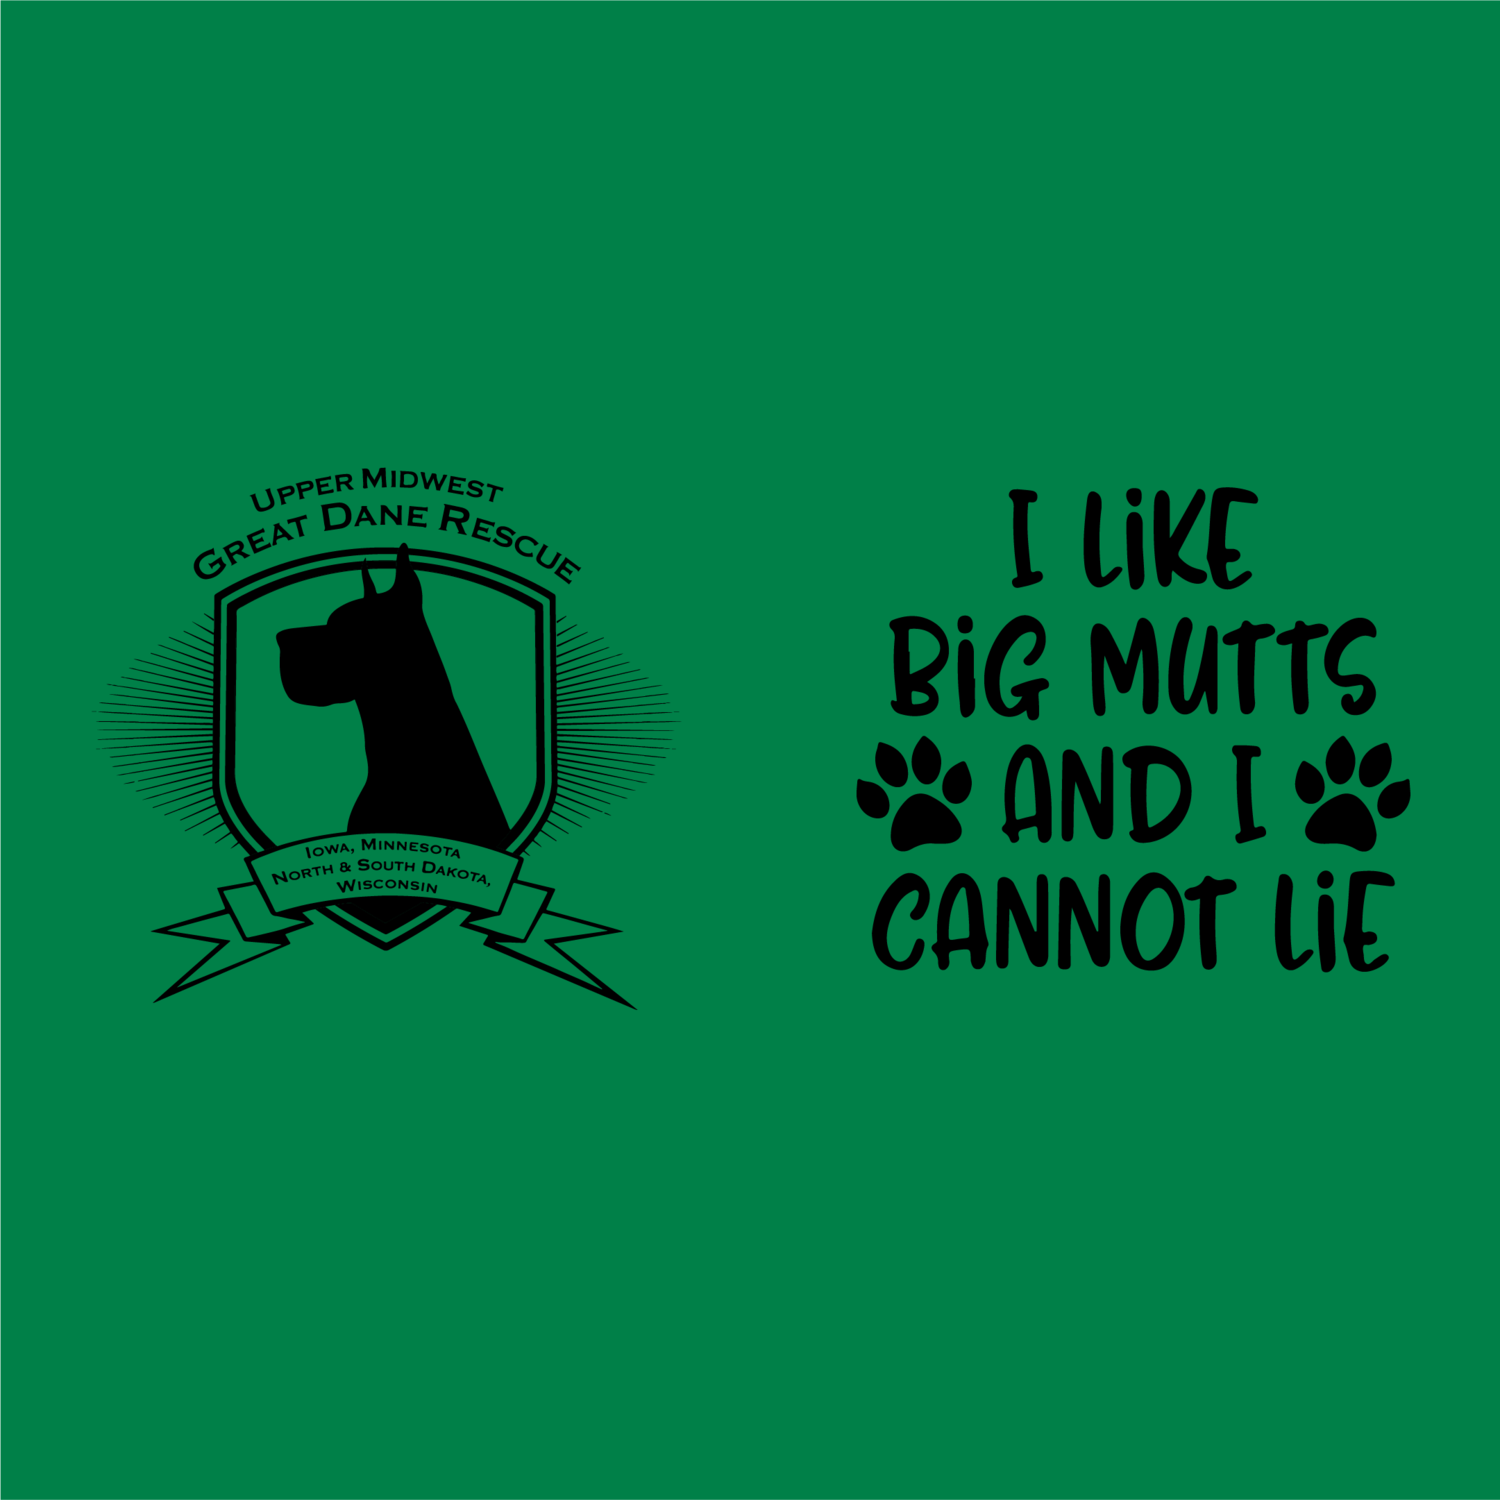 Upper Midwest Great Dane Rescue Shirts and Hoodies